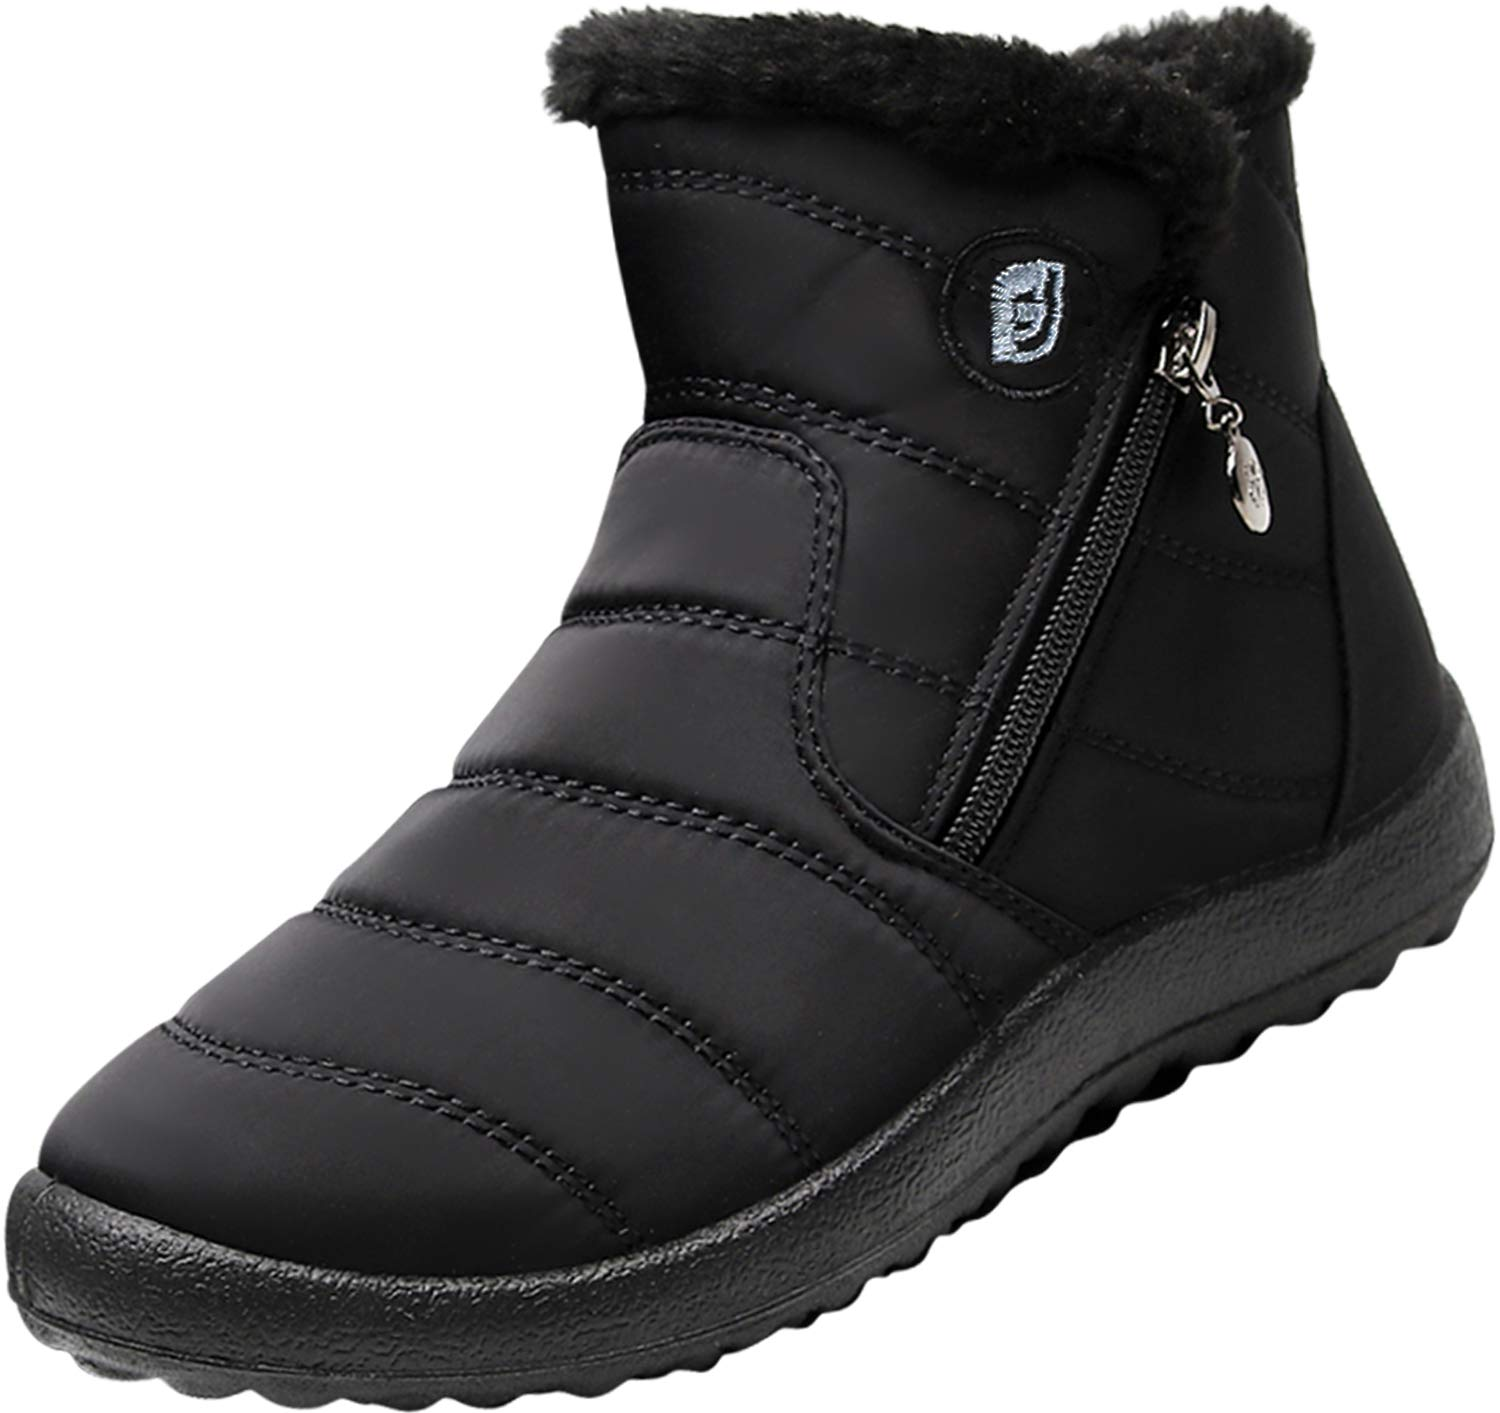 FEETCITY Womens Mens Anti-Slip Snow Boots with Fully Fur Lined High Top/Low Top 6.5 B(M) US